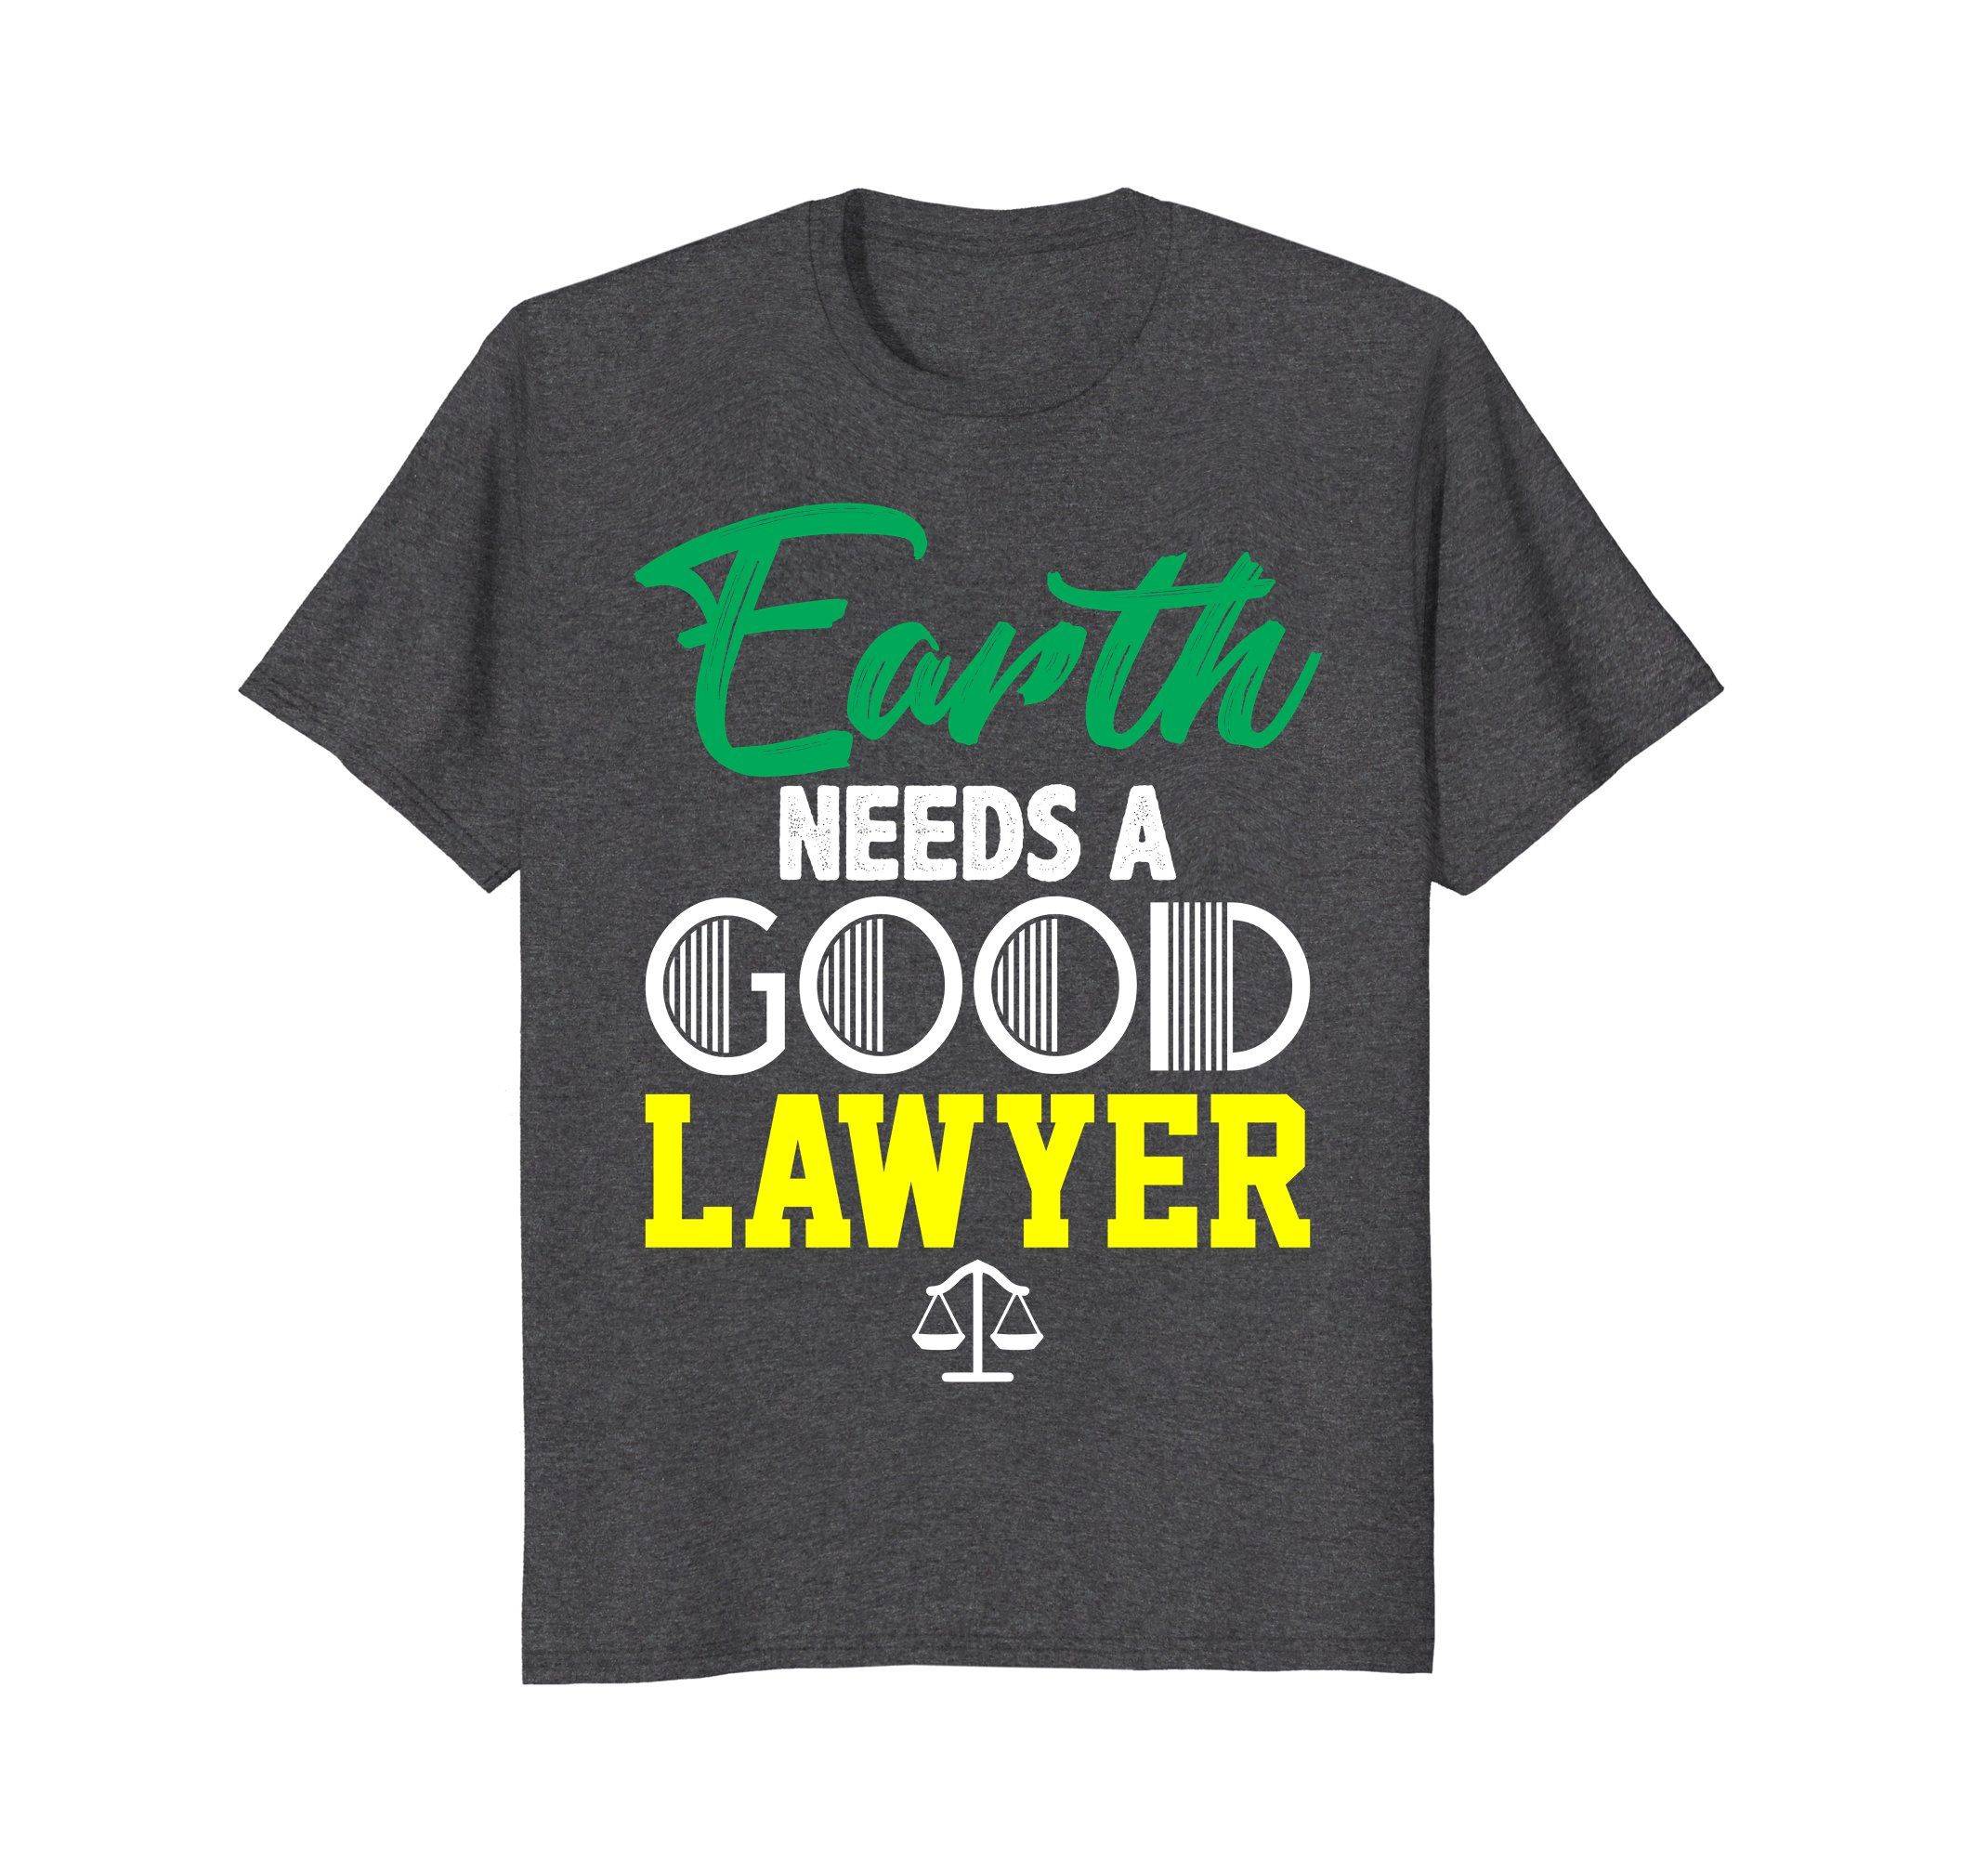 Green lawyer t shirt earth needs a good lawyer